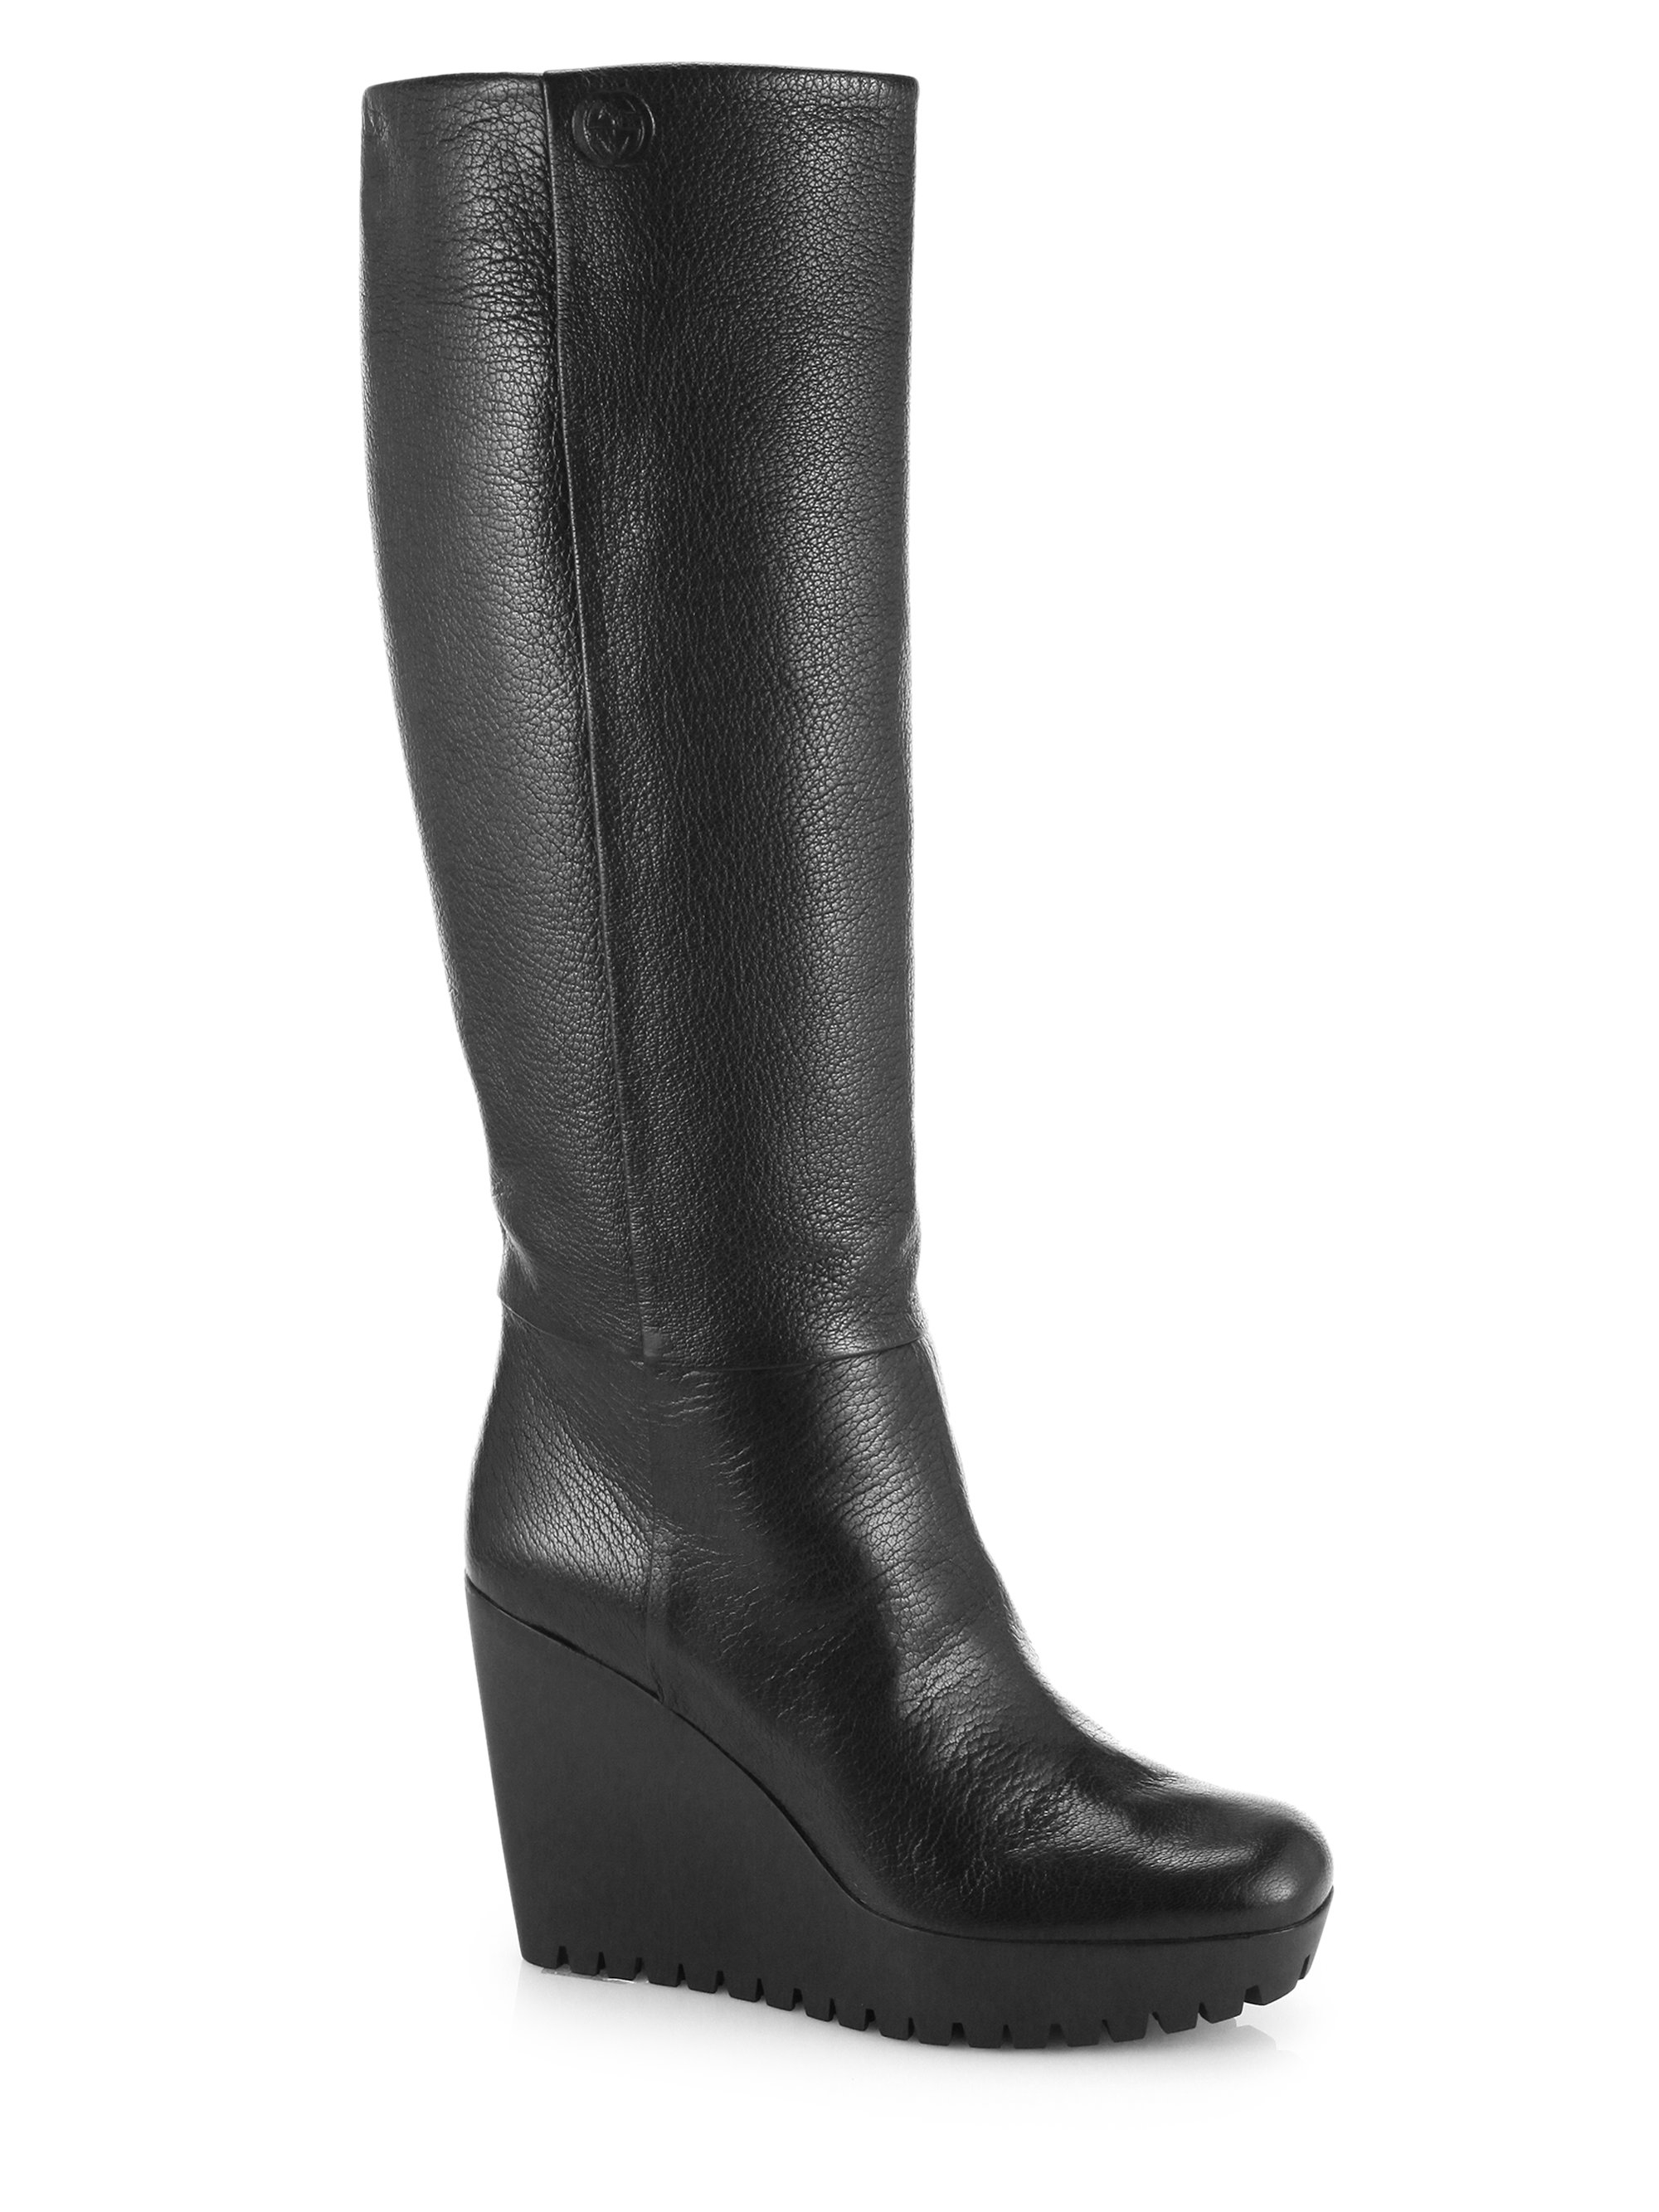 Gucci Marion Knee-High Leather Wedge Boots in Black | Lyst